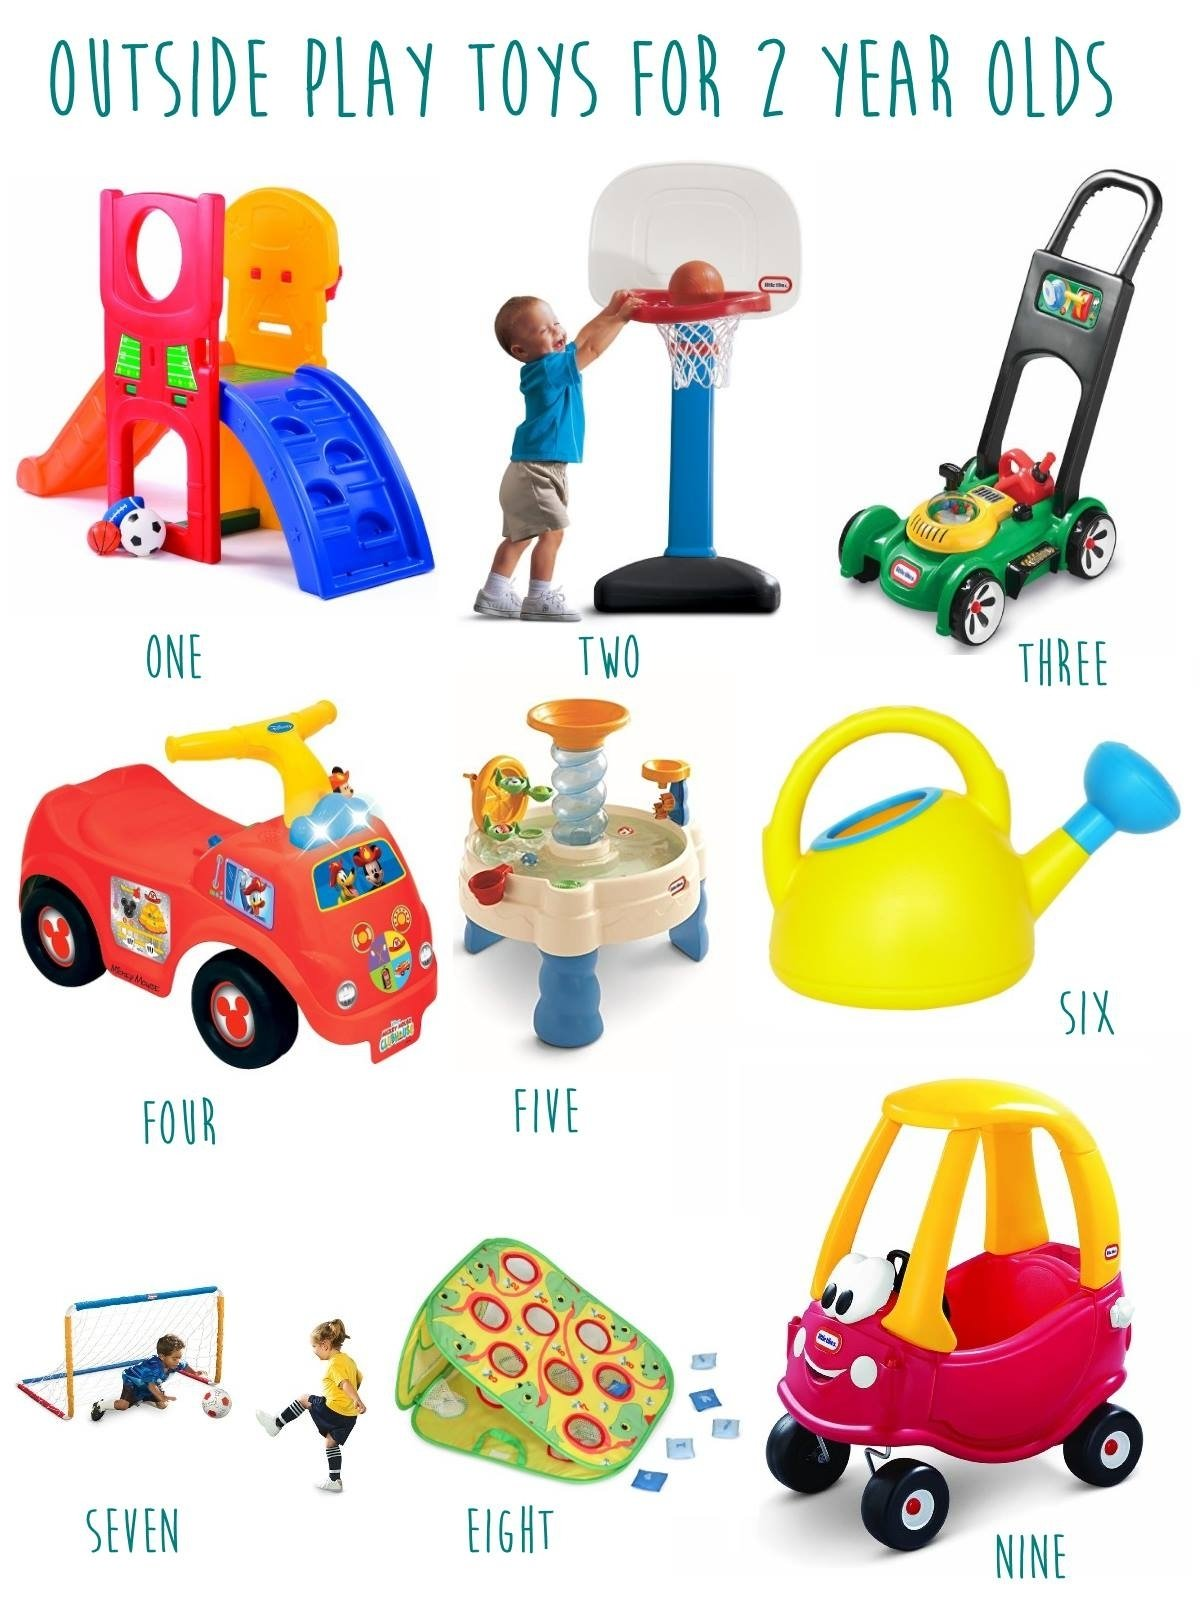 10 Great Gift Ideas For A Two Year Old Boy top christmas toys for 2 year olds pictures children toys ideas 1 2020